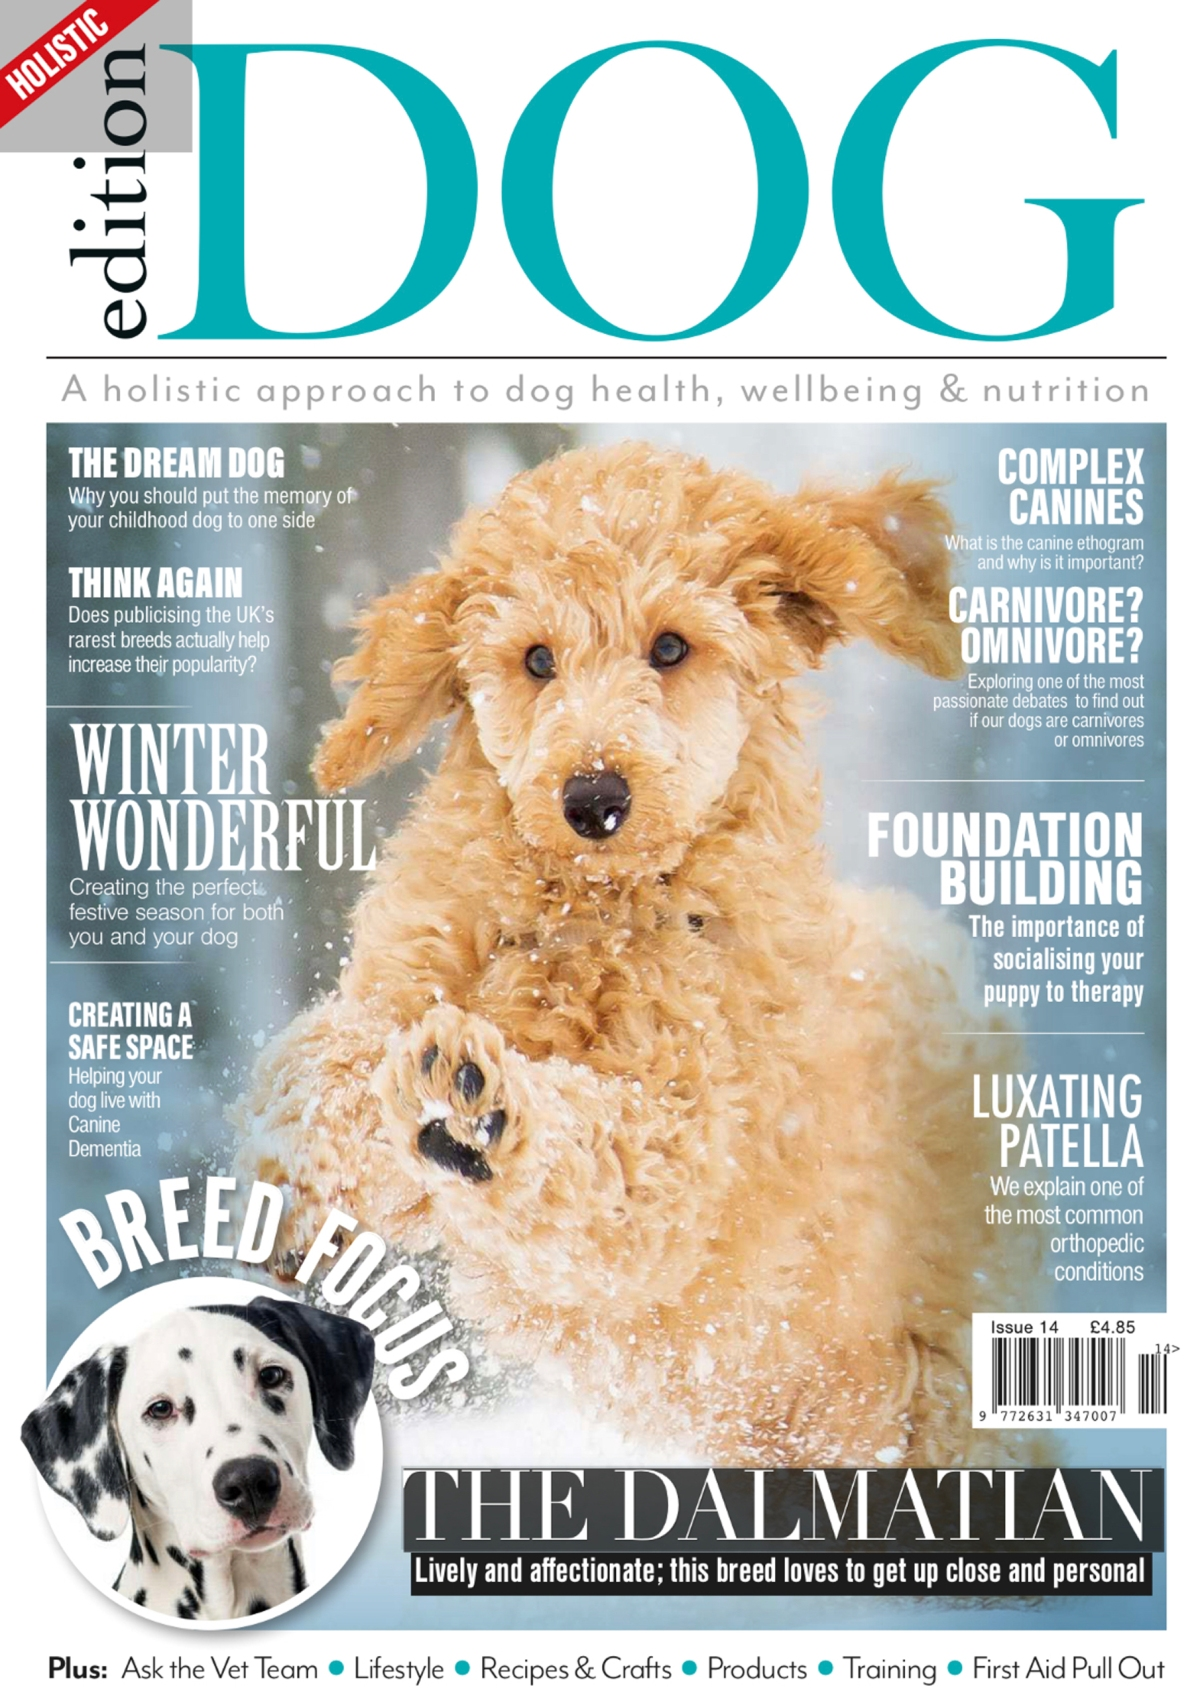 Perfect cocker spaniel book featured in Edition Dog magazine / dog and puppy tips, advice, cocker spaniel grooming, diet, health / dog blog (C) Natalia Ashton